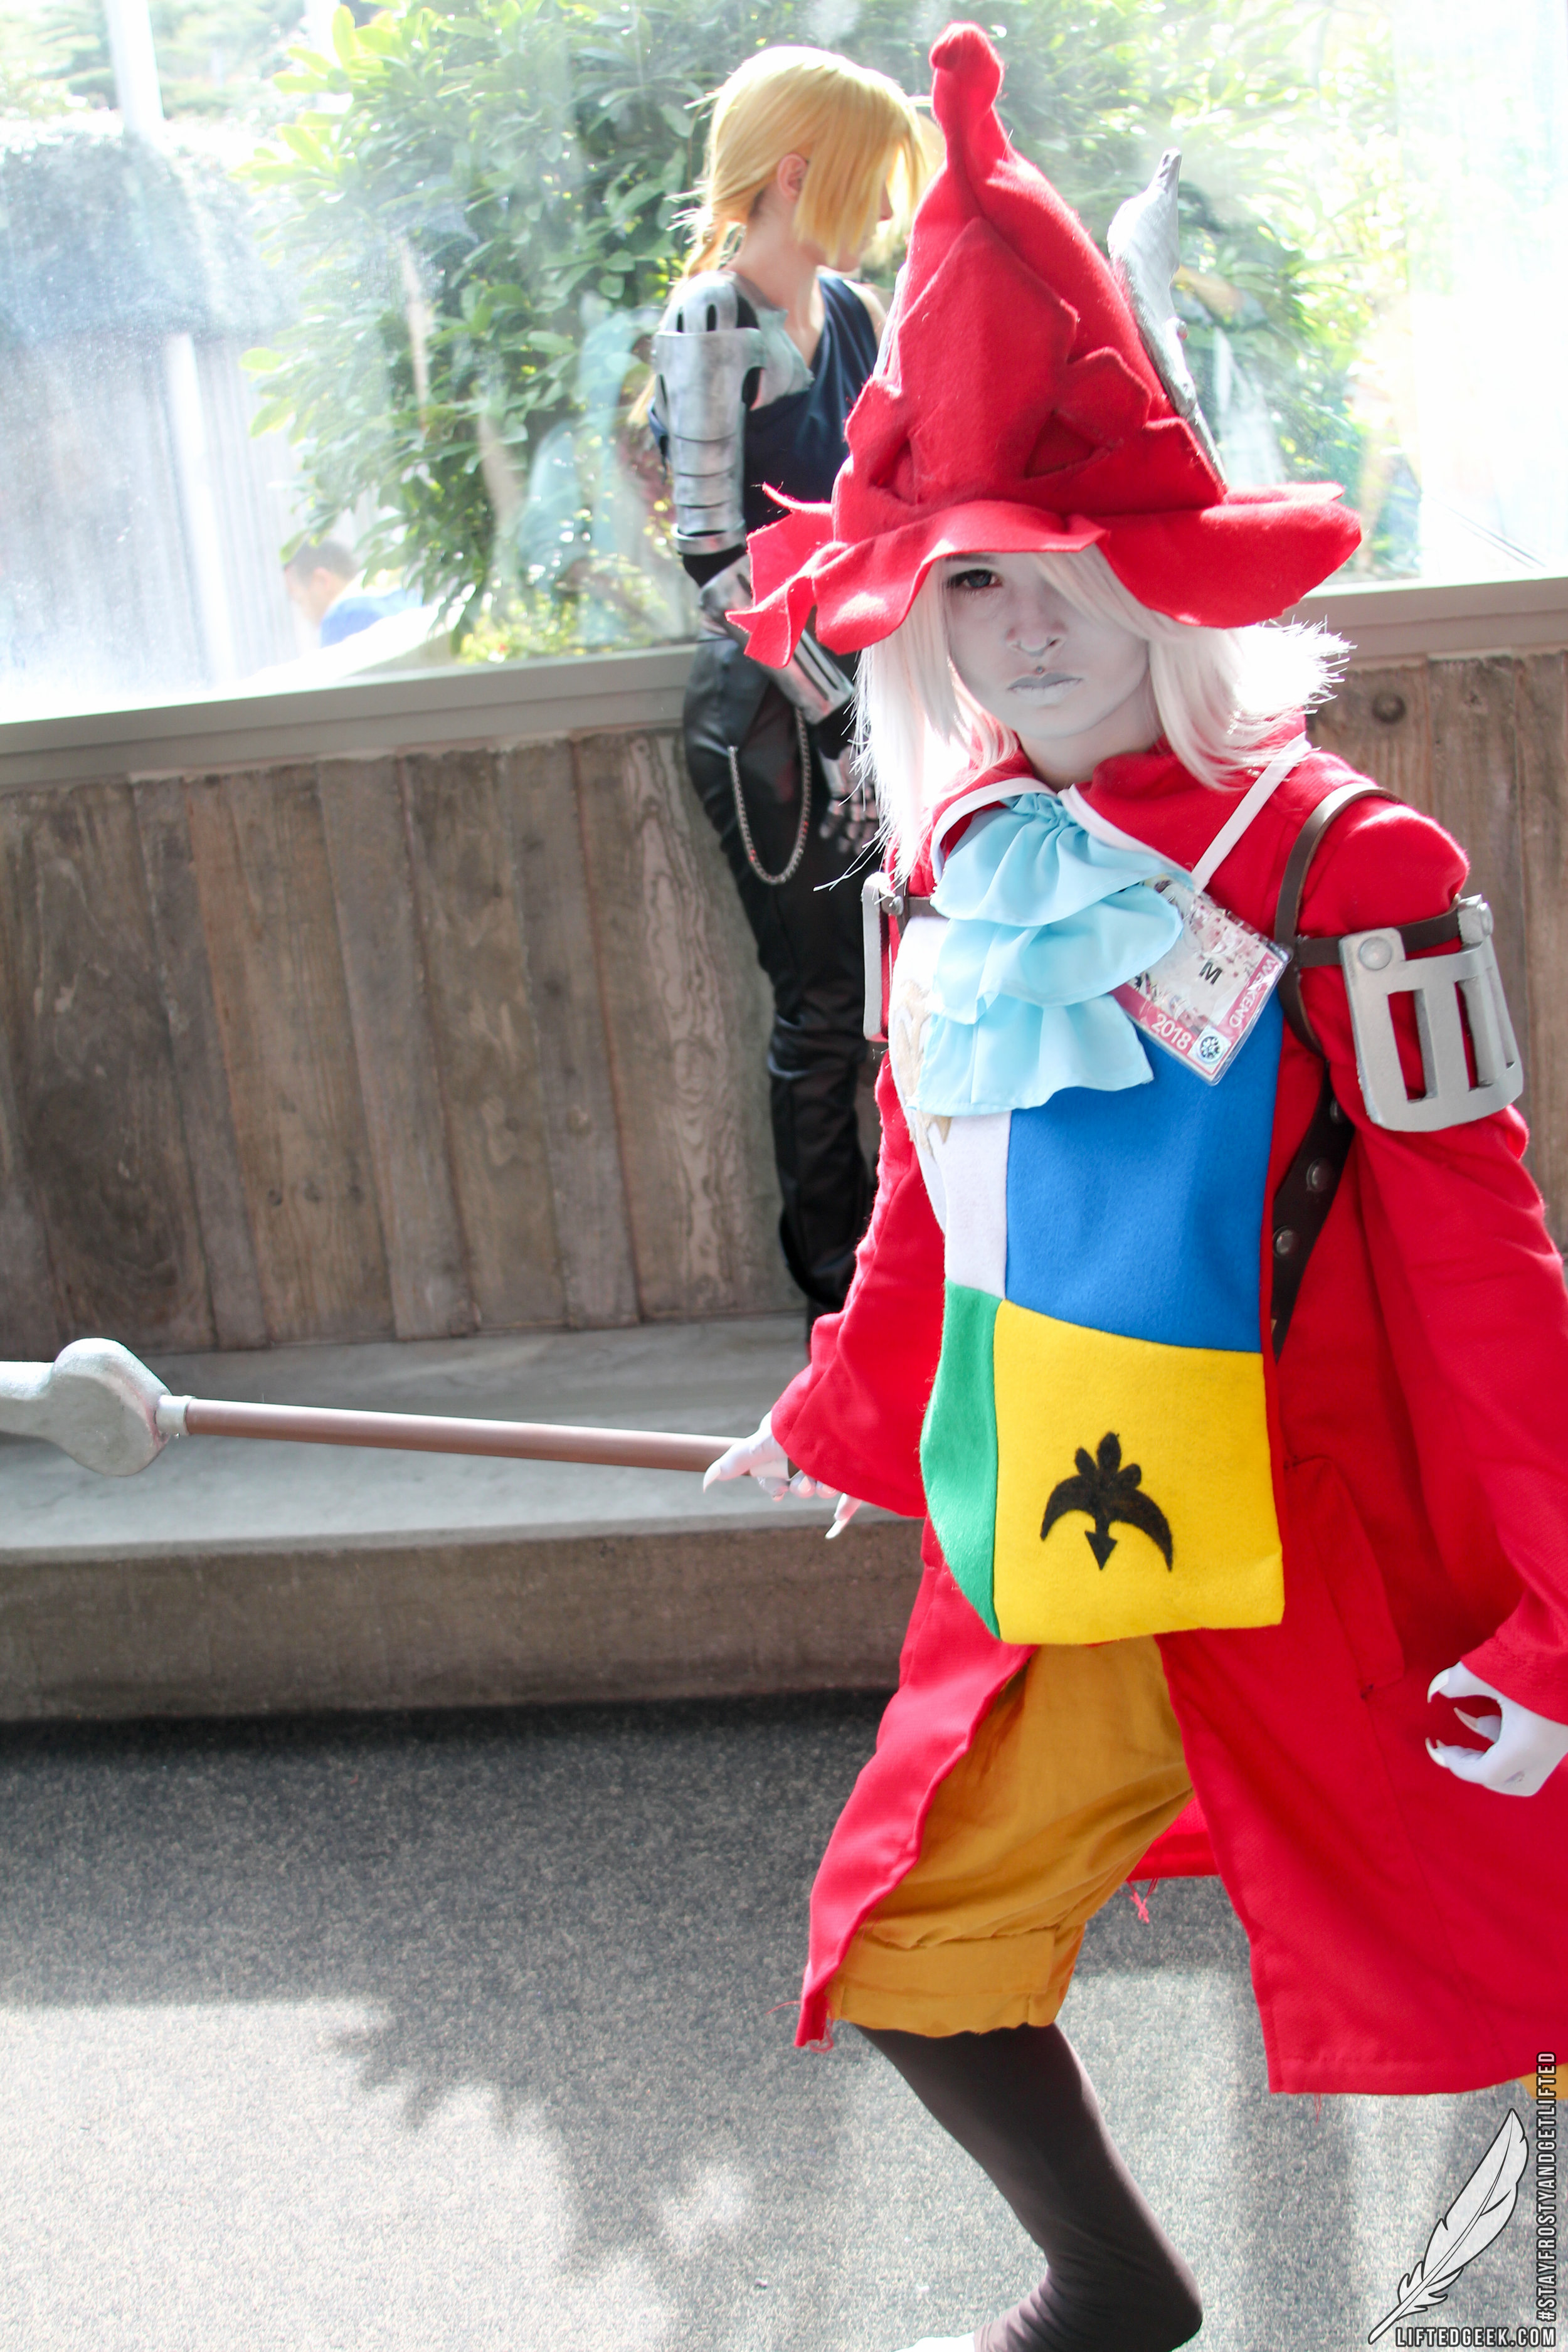 Sakuracon-cosplay-85.jpg